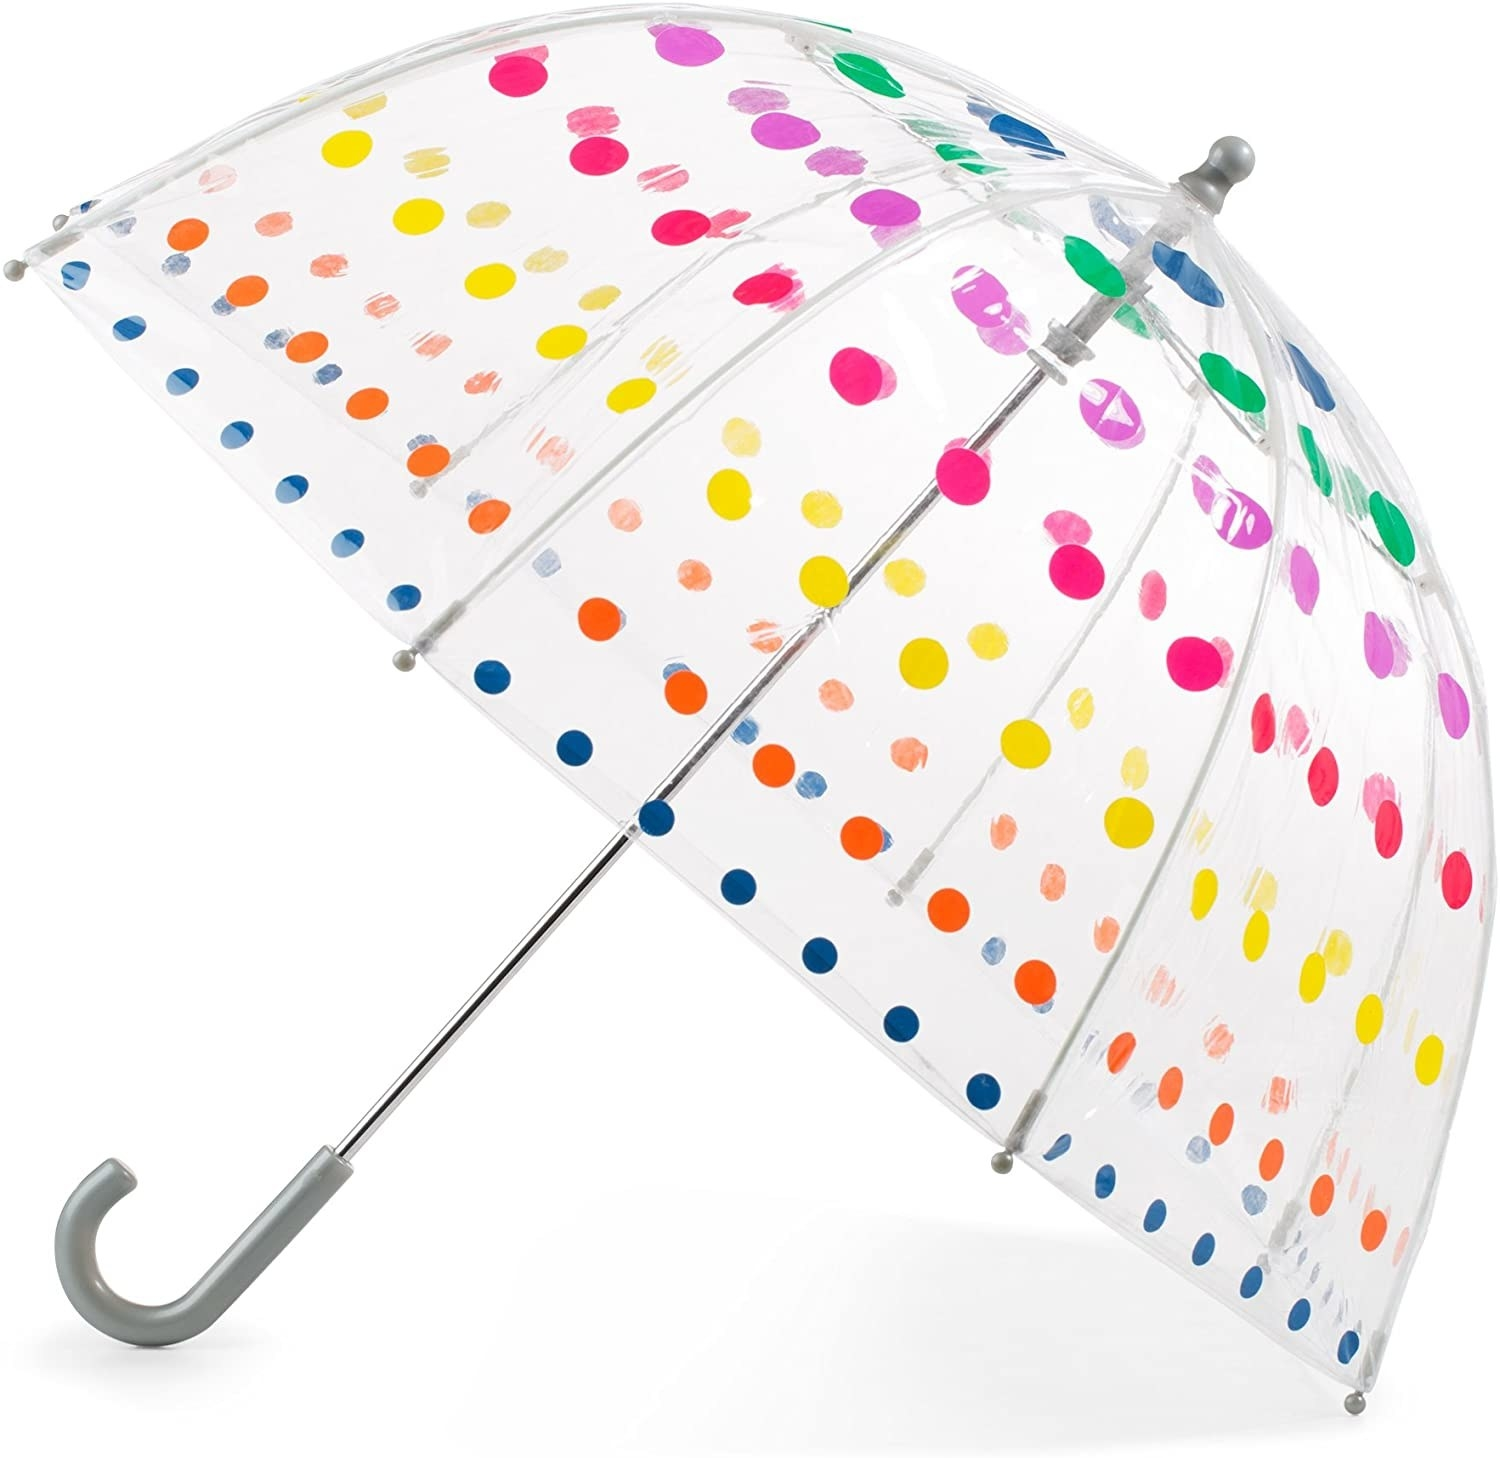 A Totes rainbow-dotted umbrella for kids